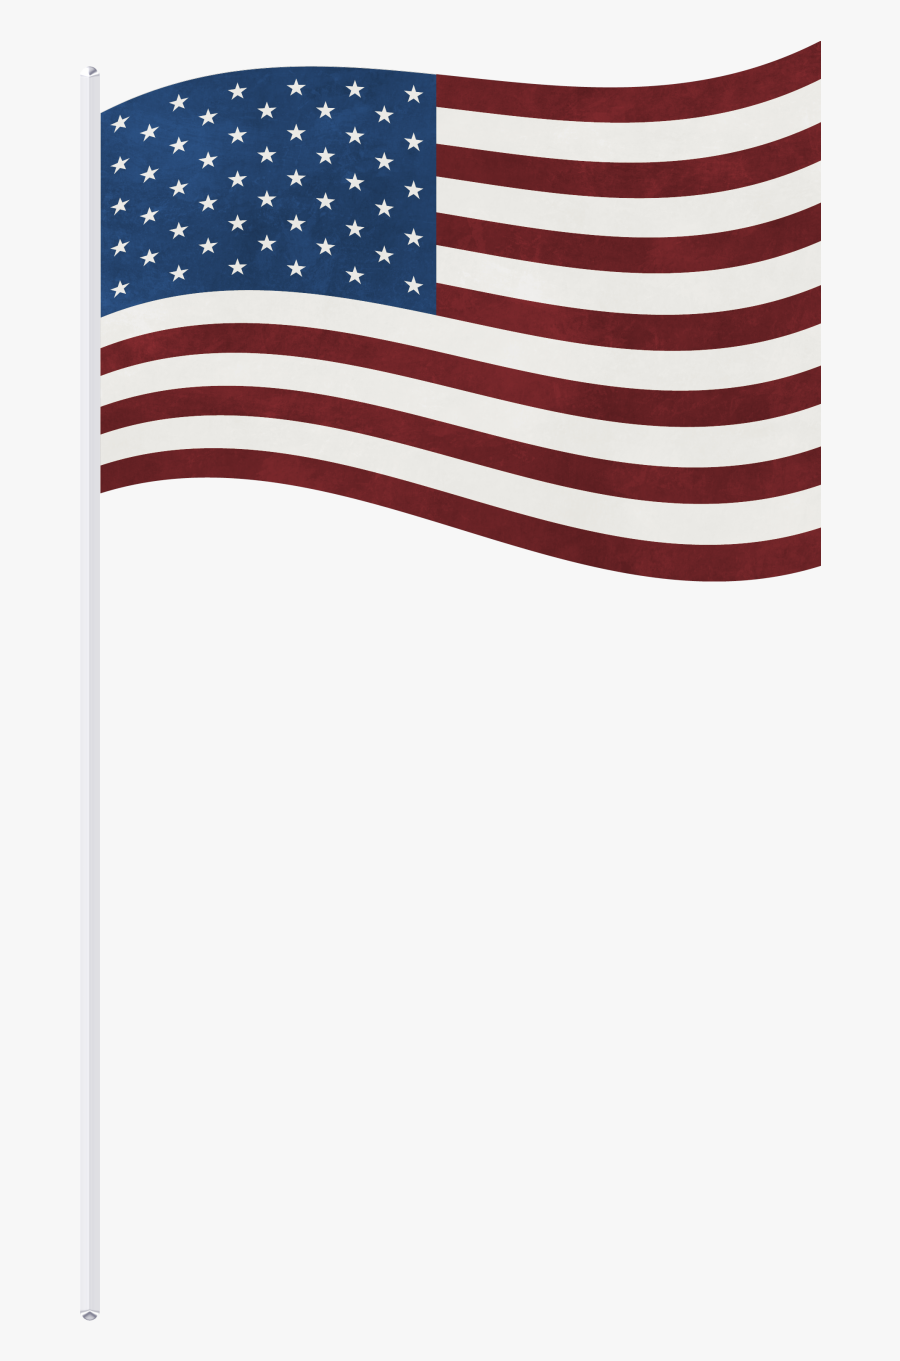 Clip Art Usa Png Clipart Picture - American Flag On Stick Png, Transparent Clipart